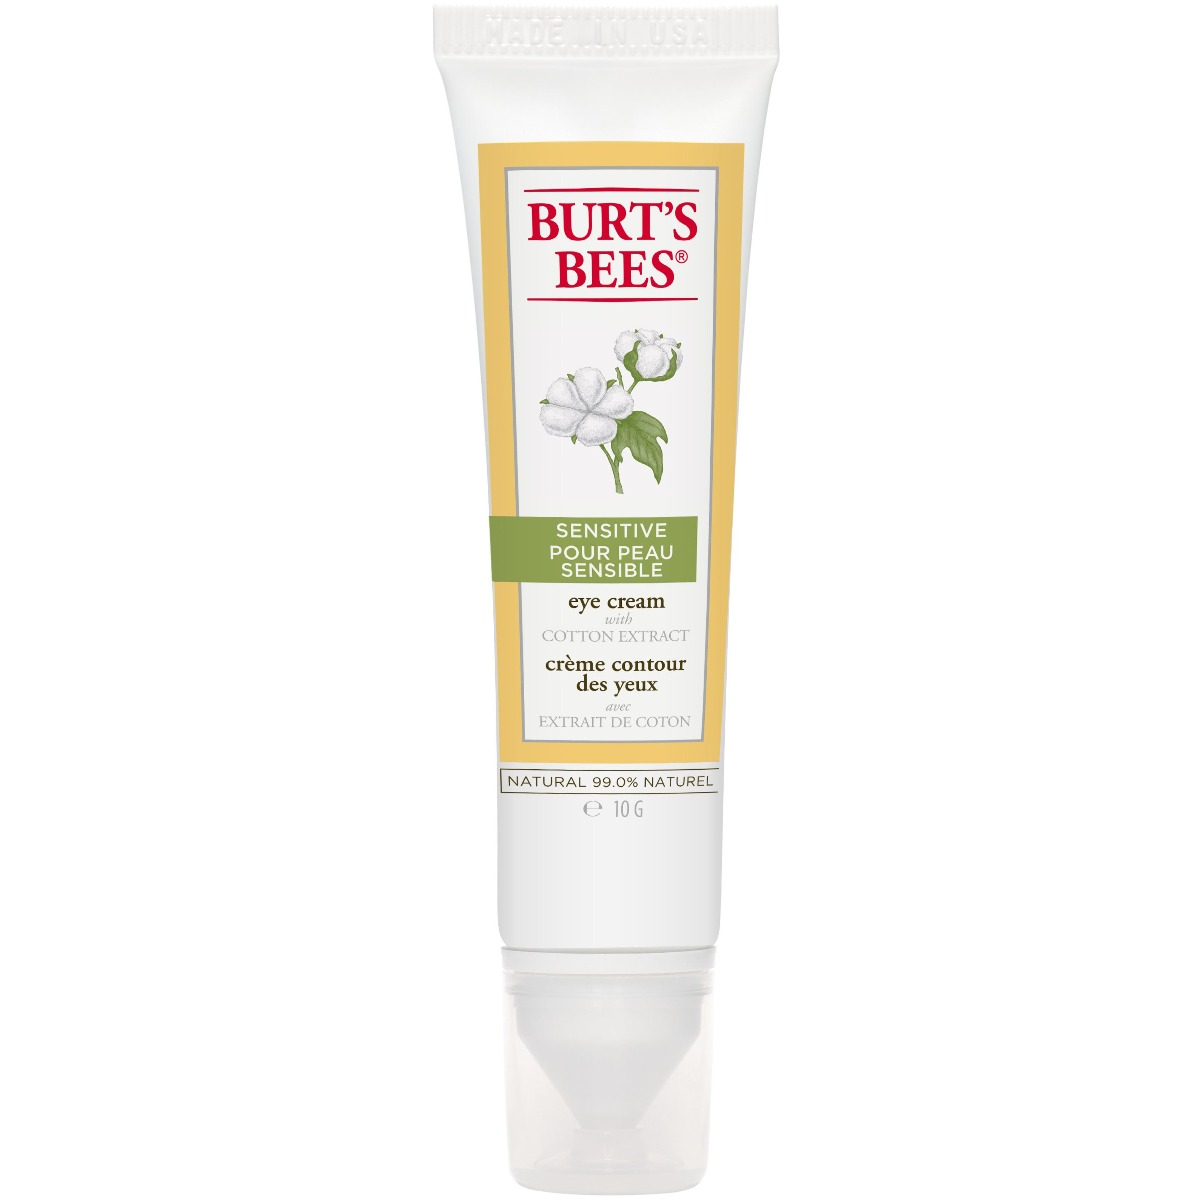 Burt's Bees Sensitive Skin Eye Cream 10g